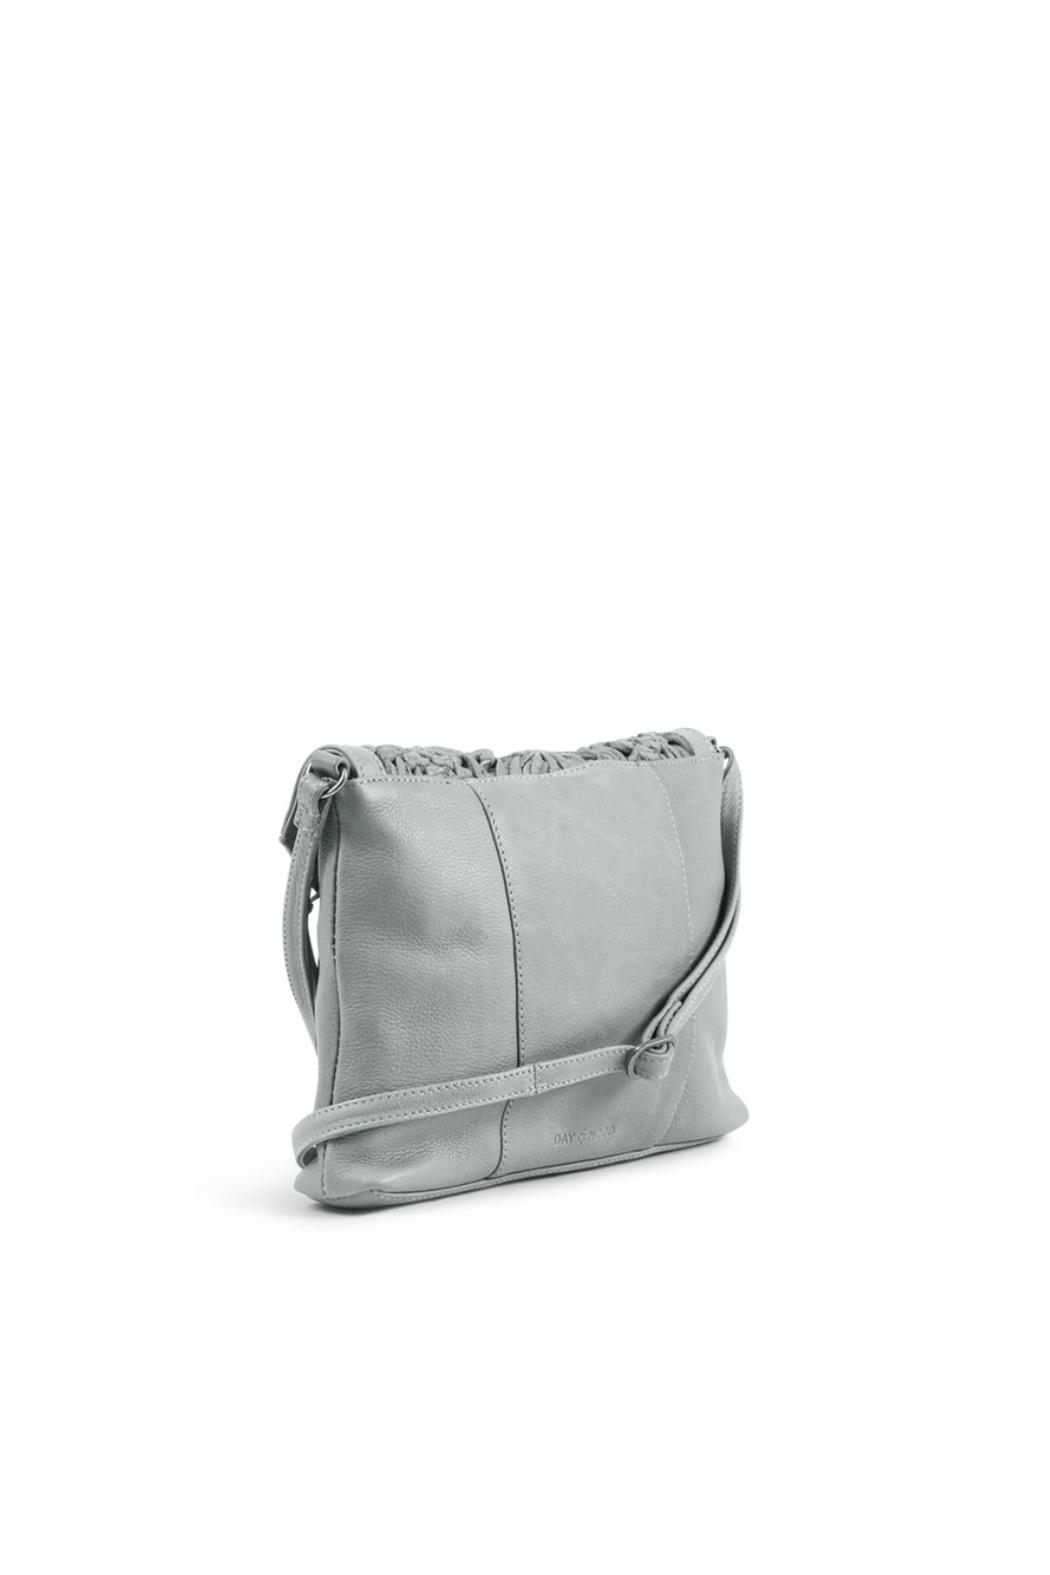 Day & Mood Tassel Leather Crossbody Bag - Side Cropped Image